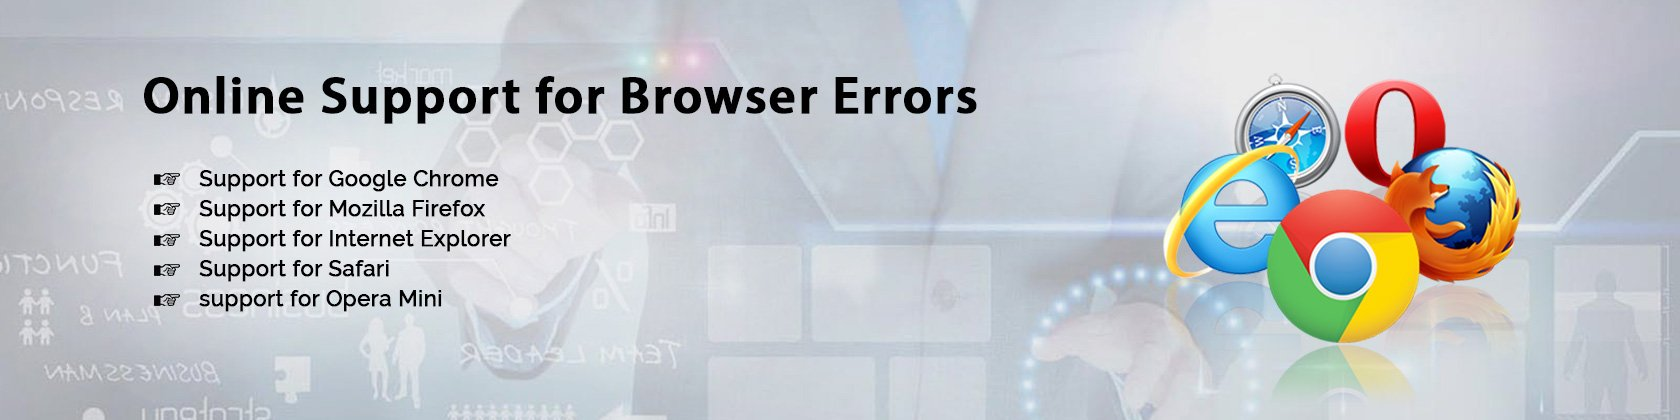 Browser-Errors